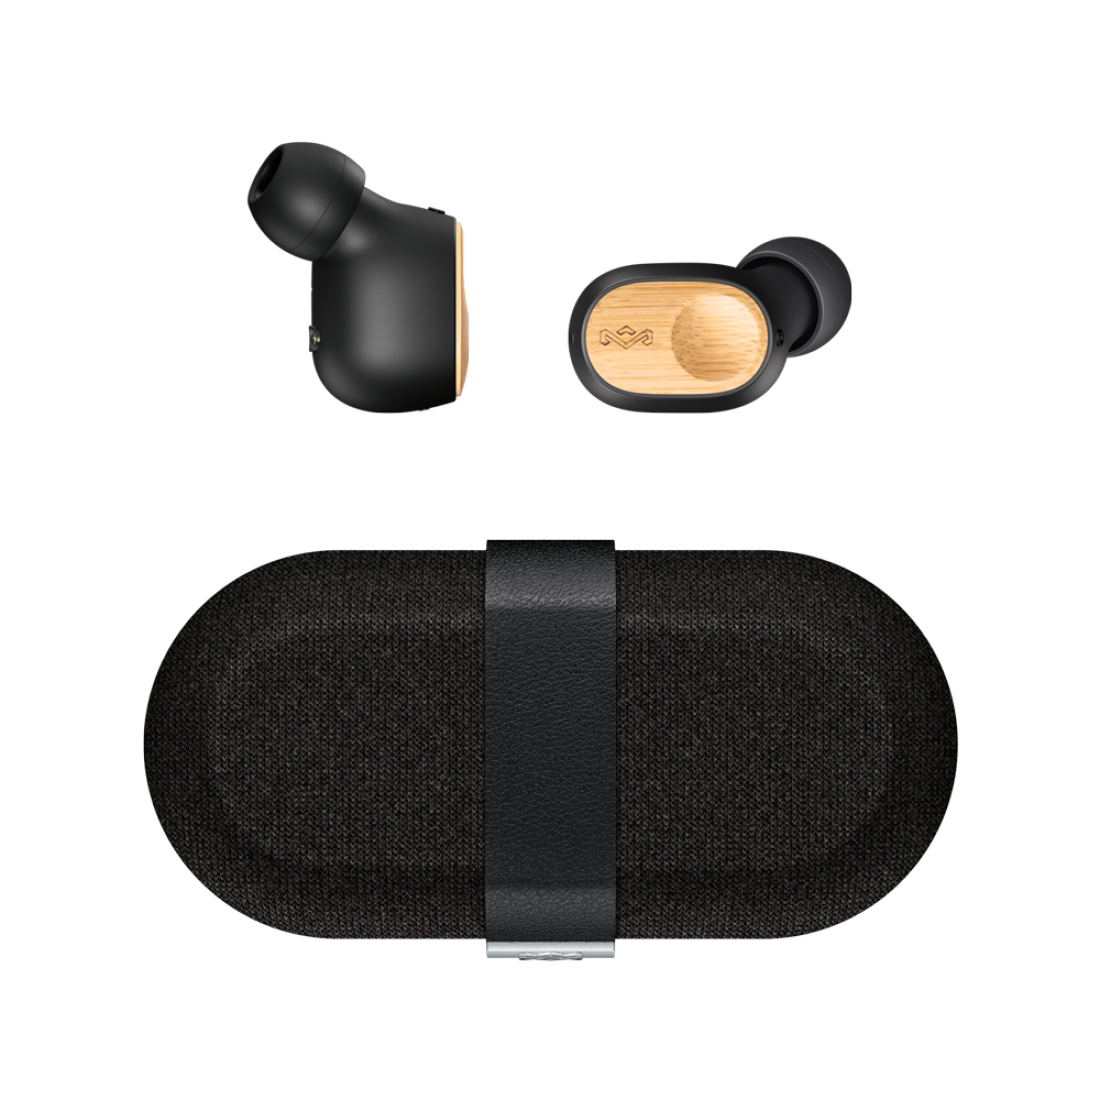 Liberate Air True Wireless Earphones | House of Marley